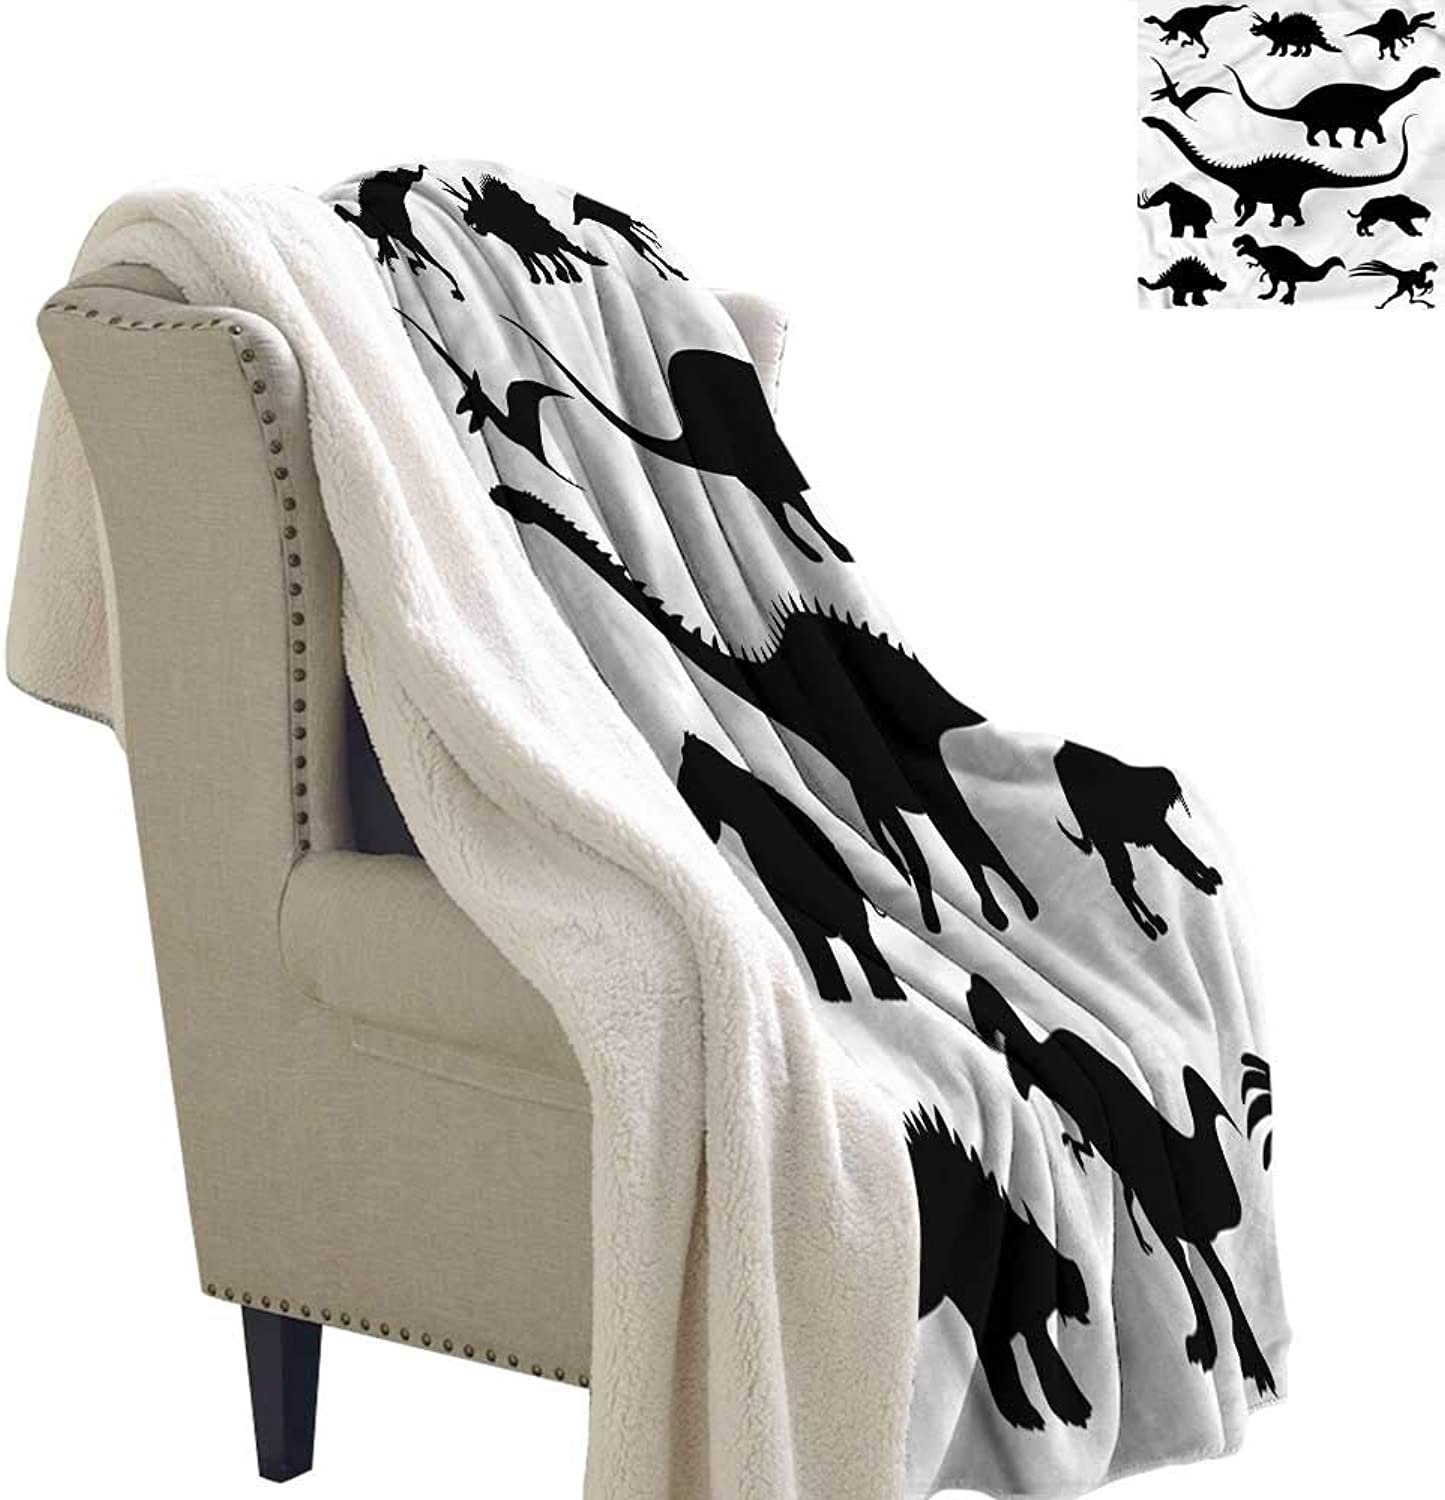 AndyTours Winter Quilt Dinosaur Silhouettes Predators Blanket for Family and Friends W59 x L31